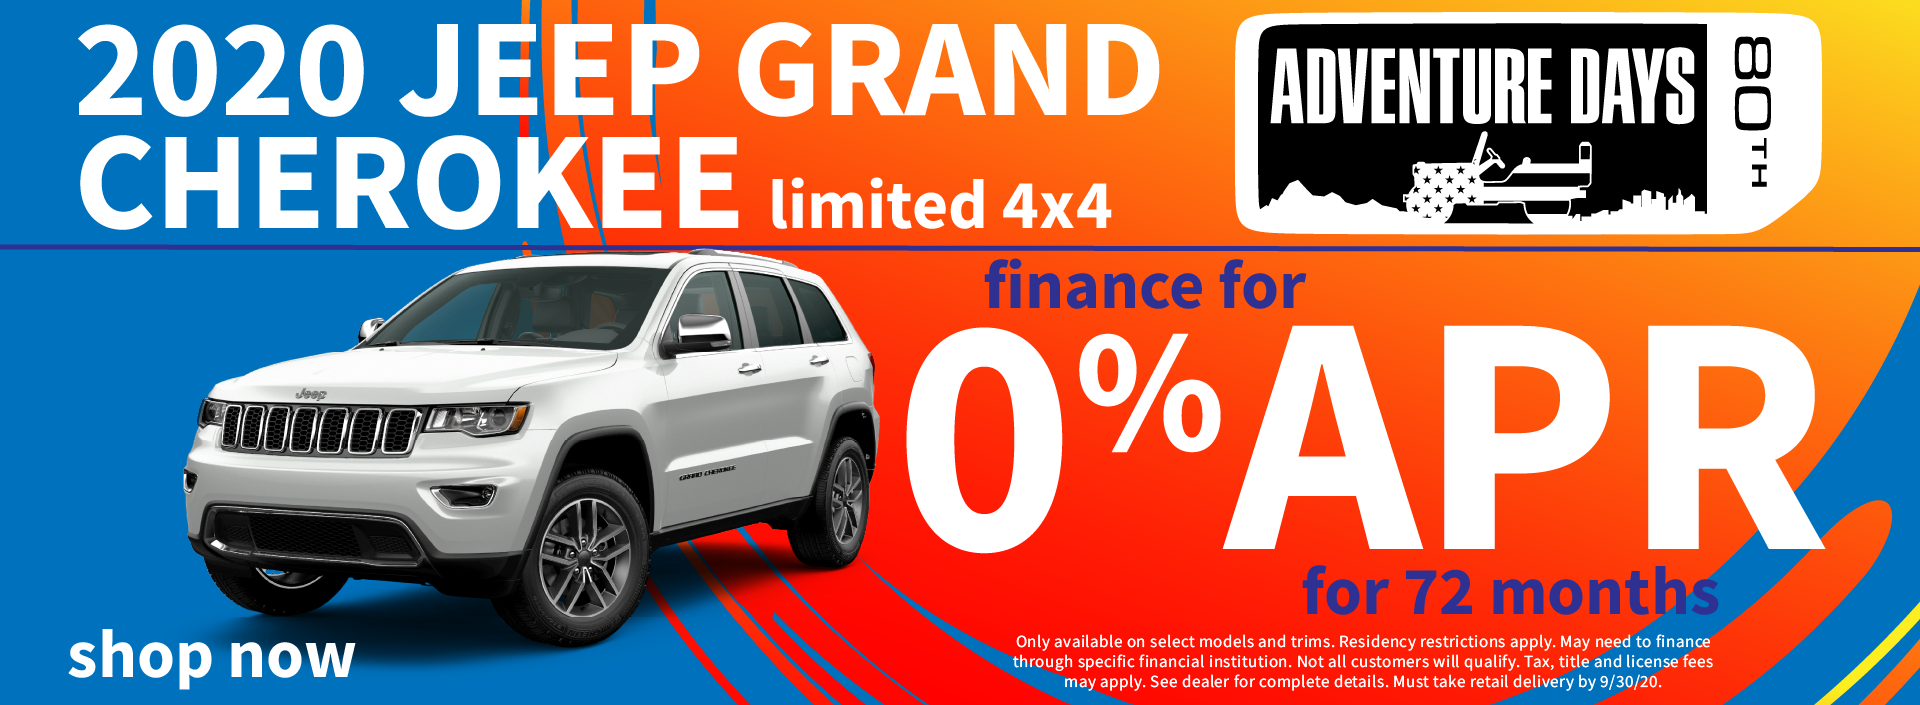 2020 Jeep Grand Cherokee Finance Special